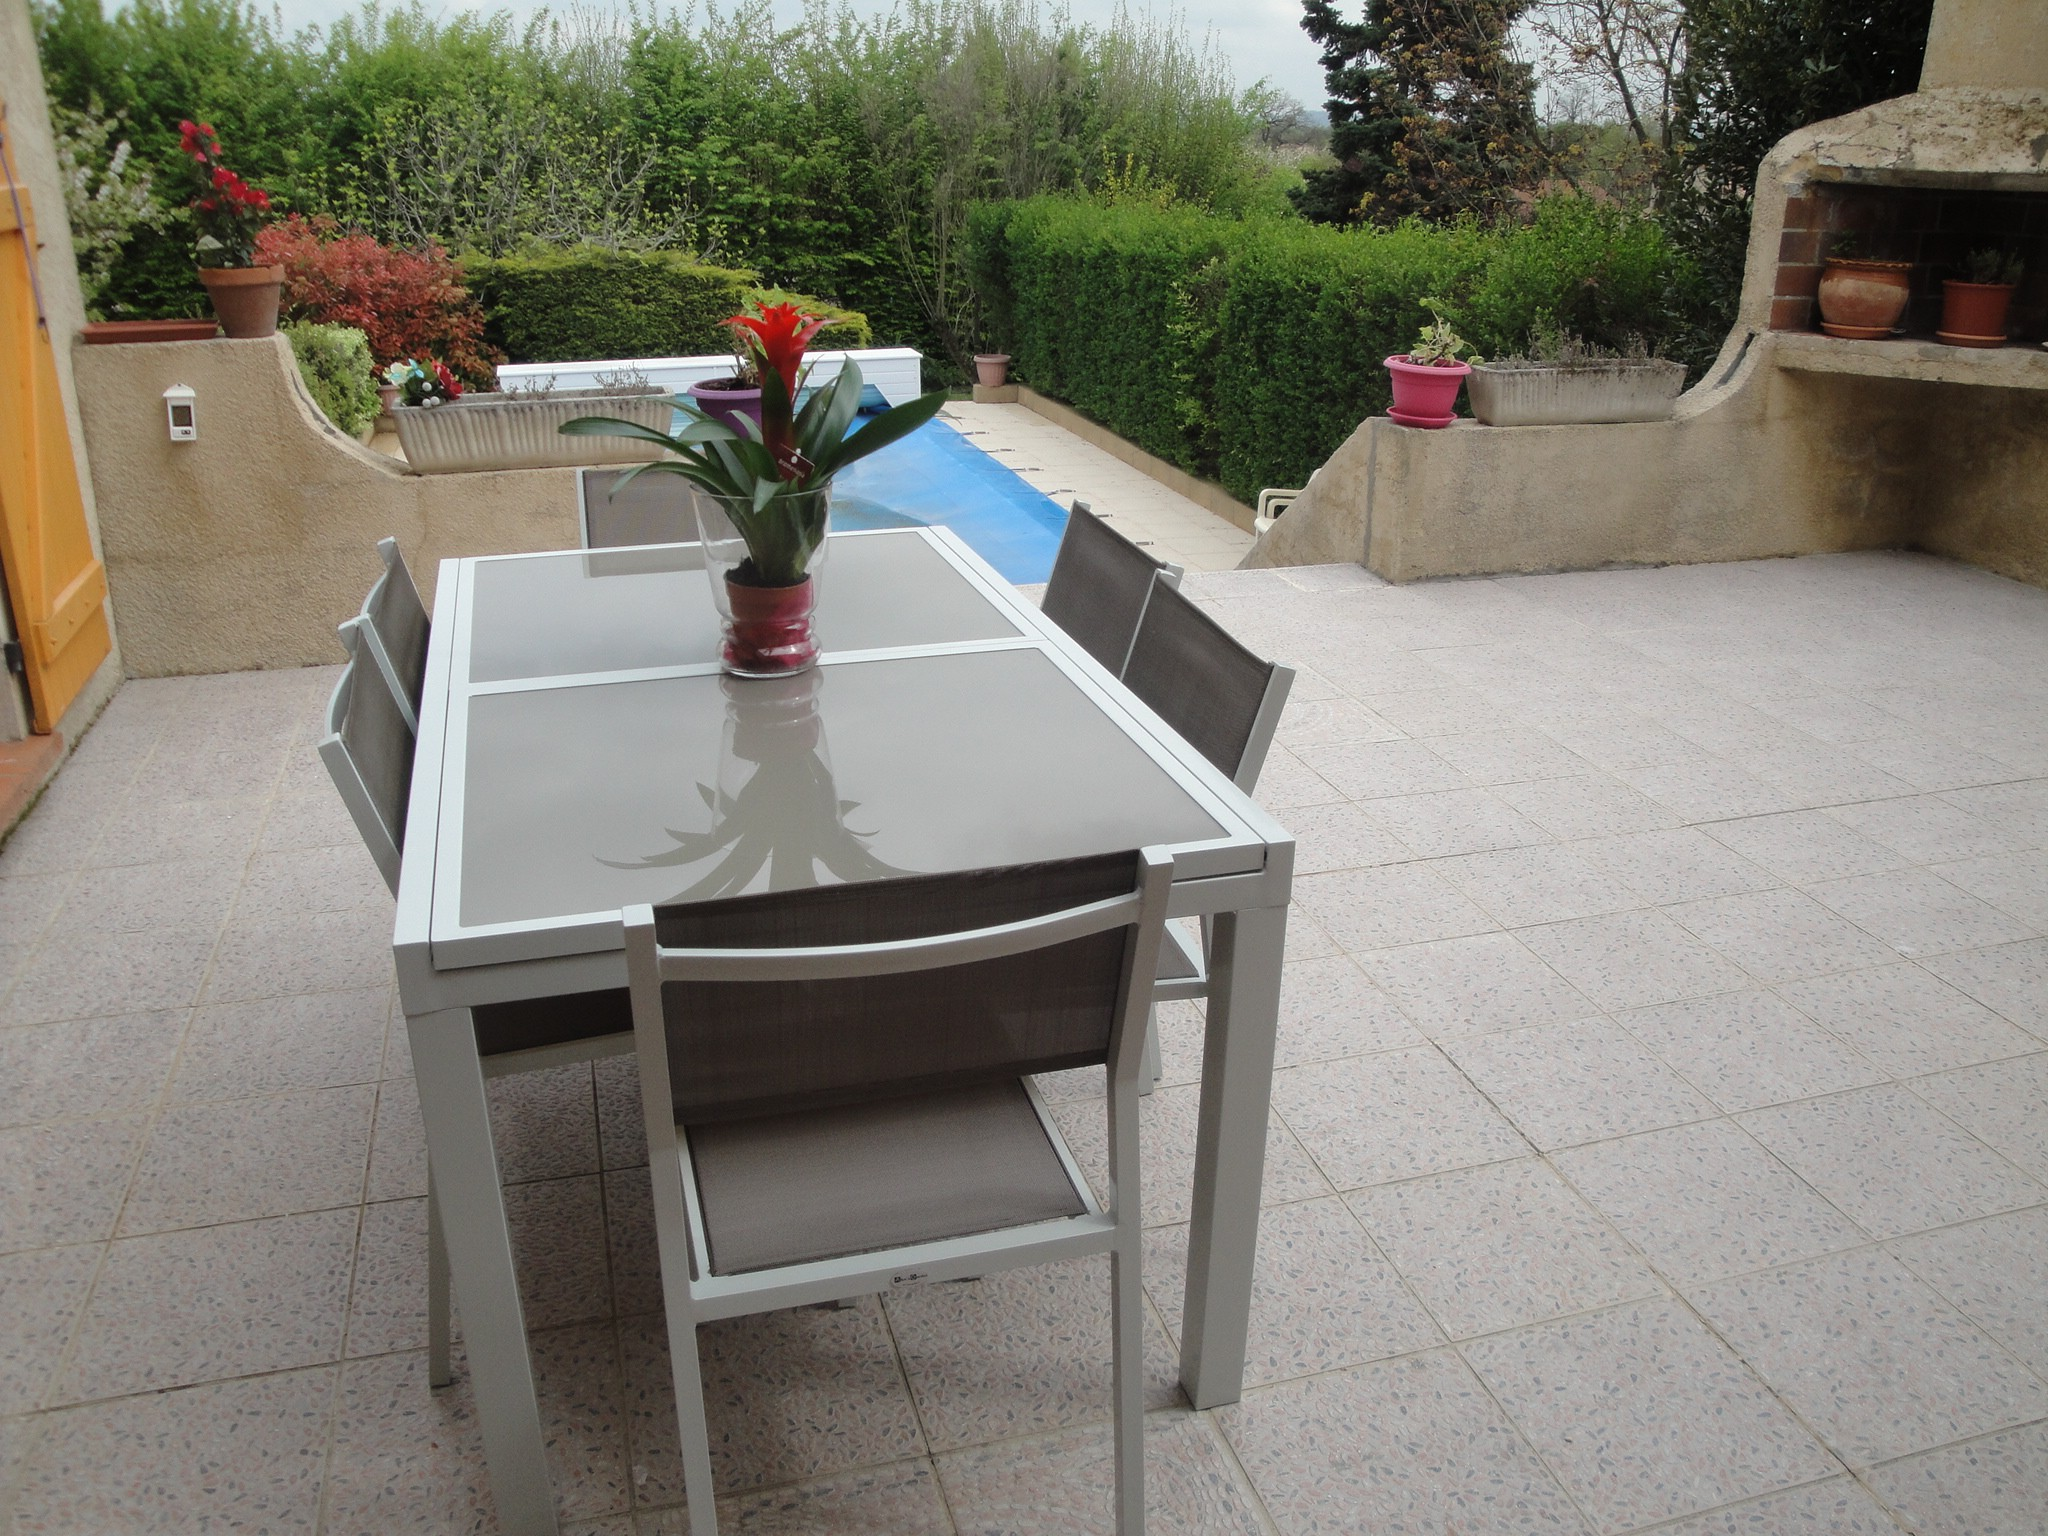 Table plus chaise de jardin aluminium - veranda-styledevie.fr